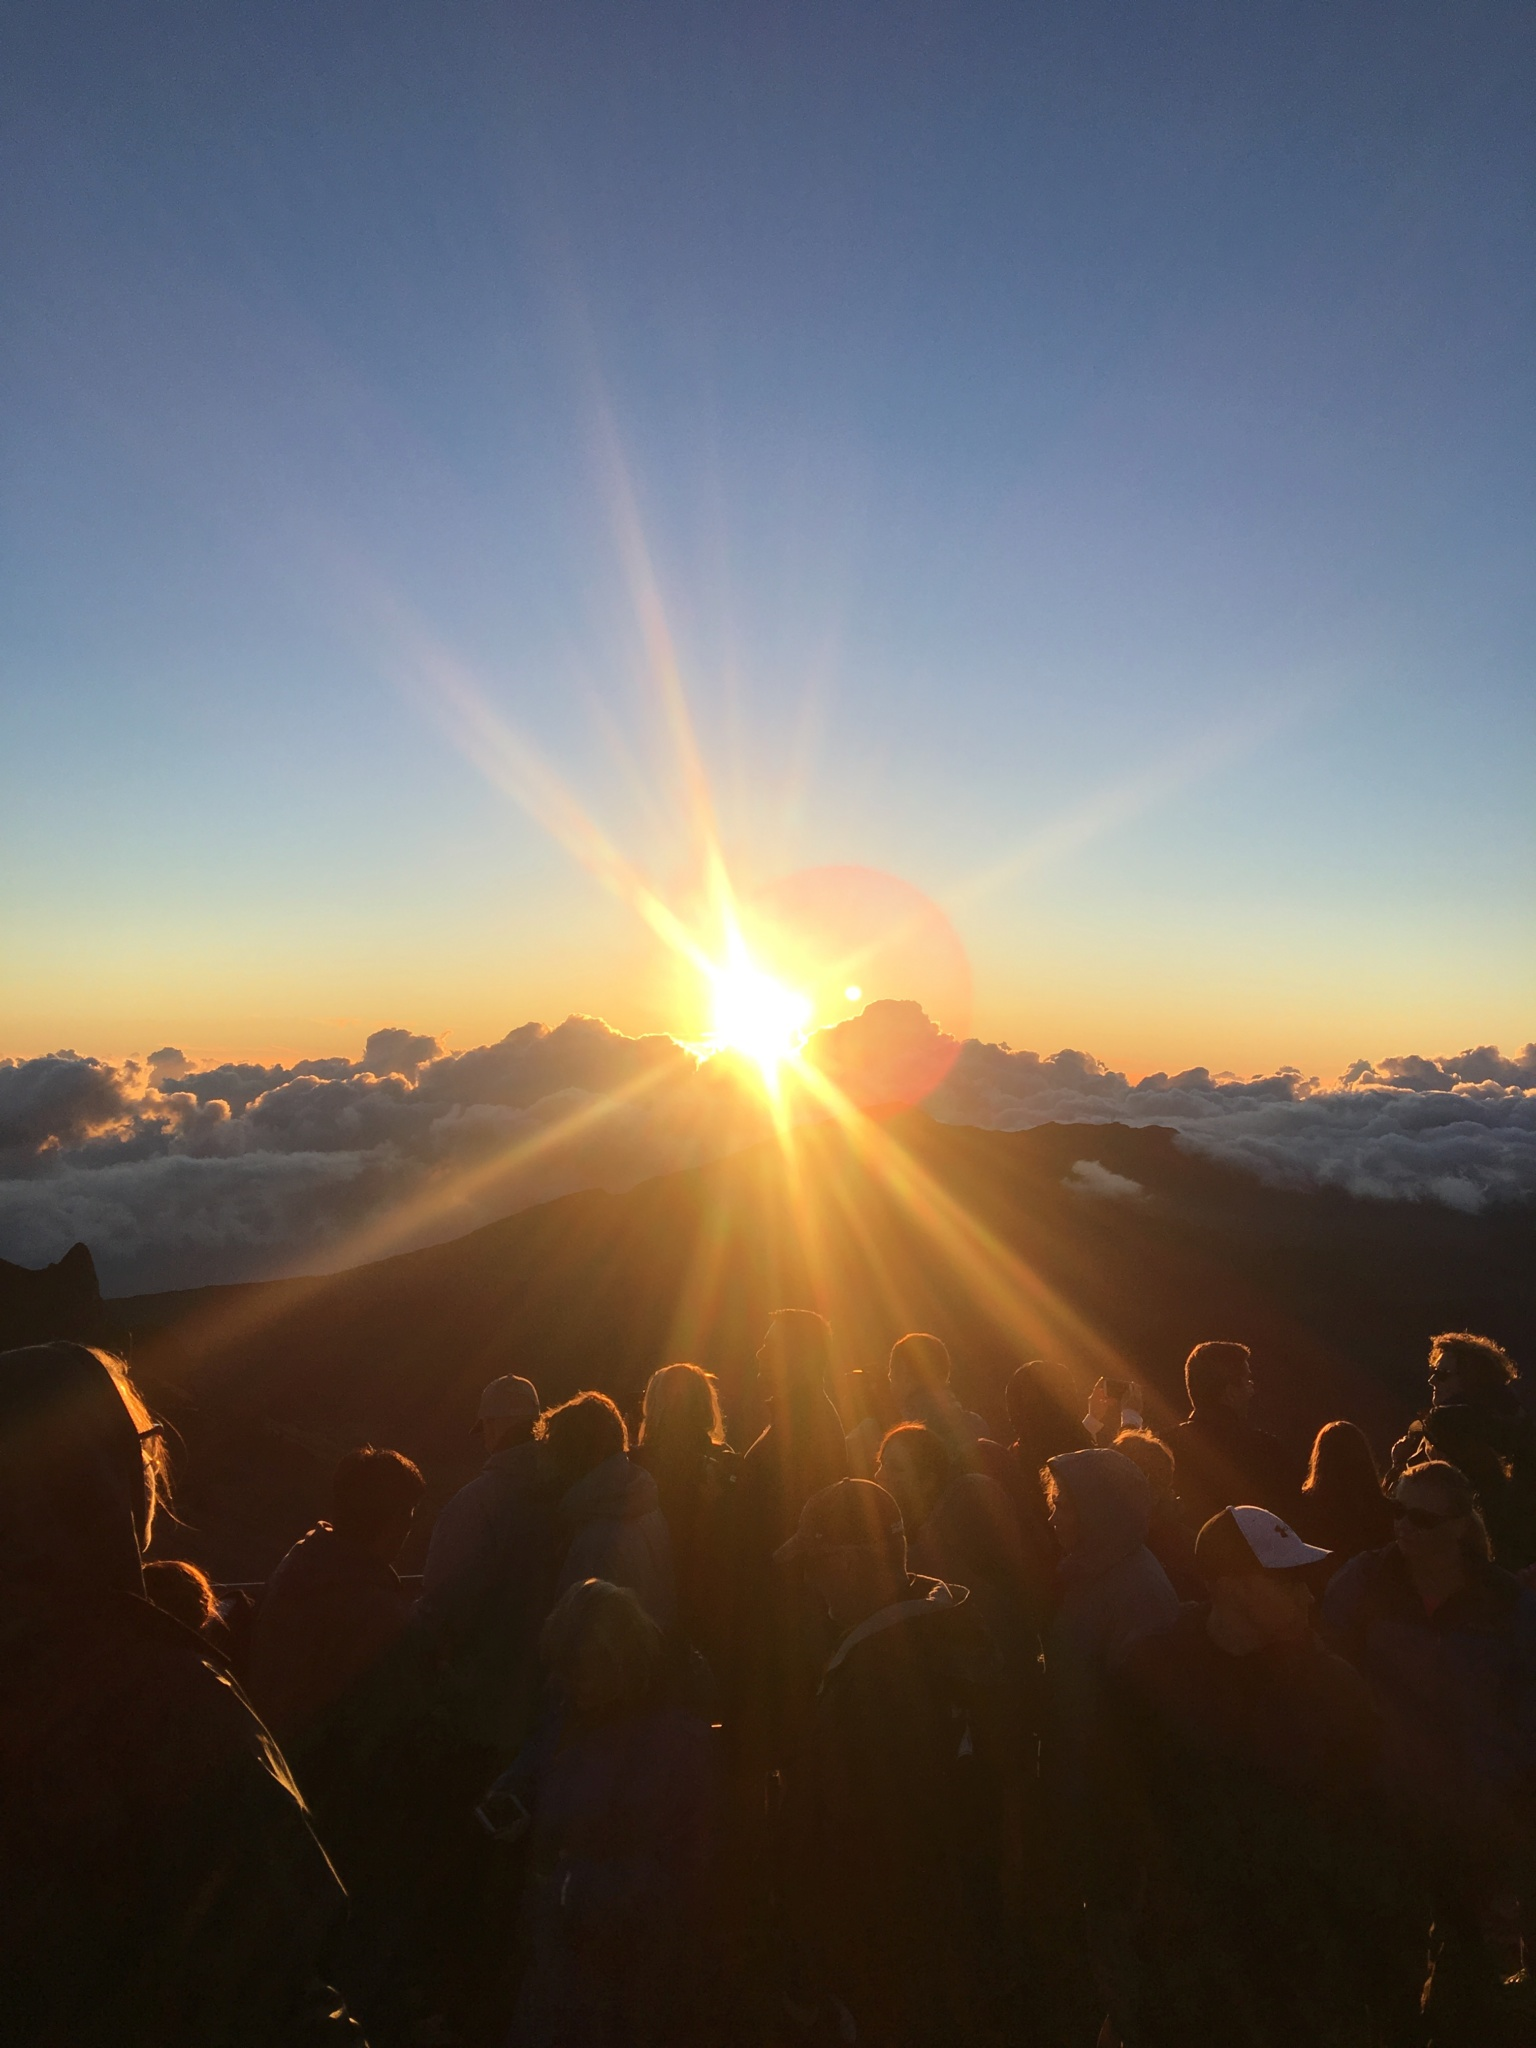 Haleakala Sunrise - Haleakalā Sunrise - Haleakala National Park - Haleakalā National Park - Haleakalā Summit Sunrise - Hawaii - Maui - Summer - Killer Travel - Killer Look Travels - TheKillerLook.com - The Killer Look